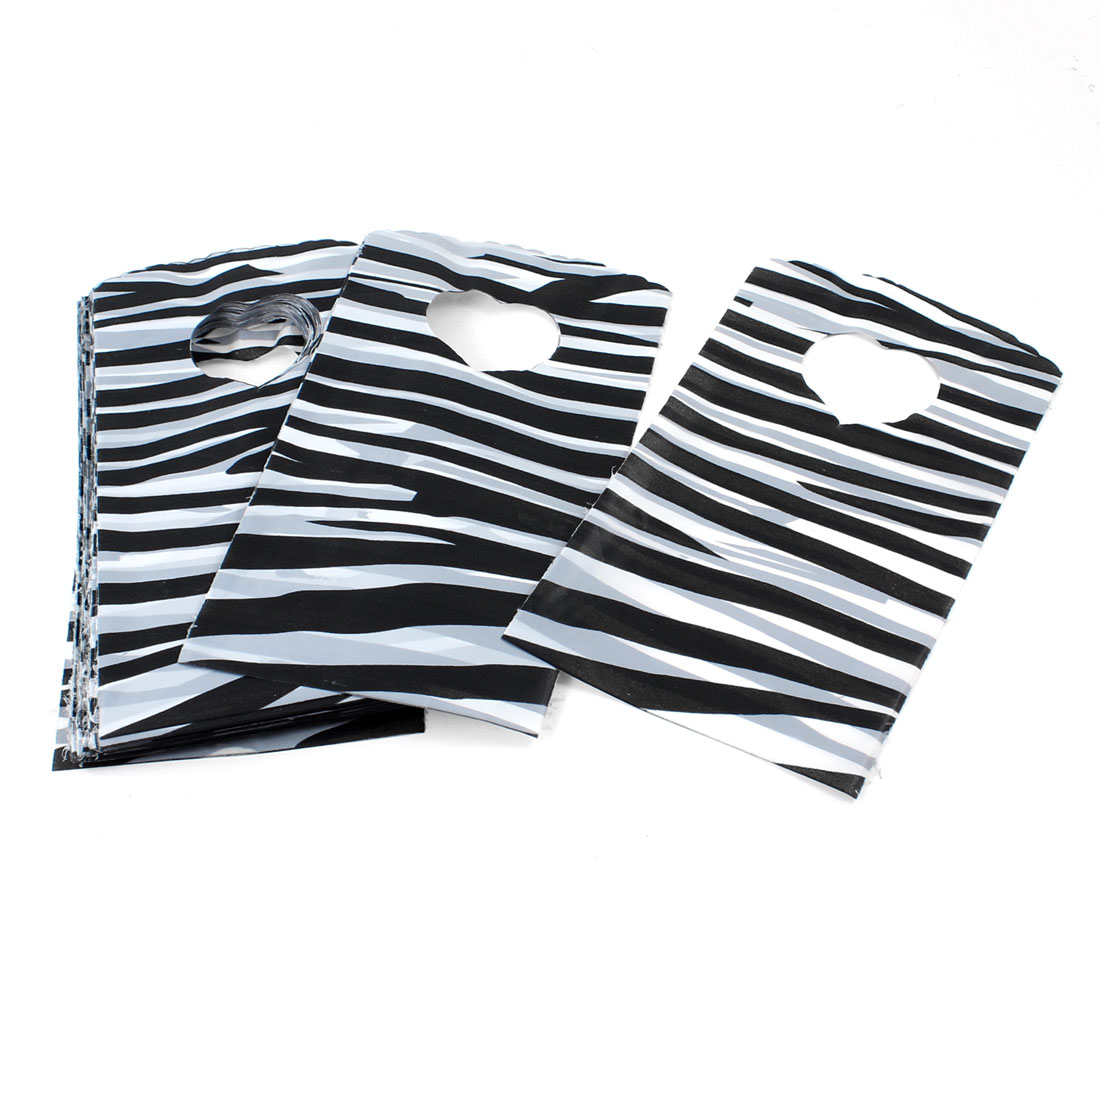 100 x Black White Plastic Zebra Pattern Gift Jewelry Bag 15cm x 9cm for Birthday